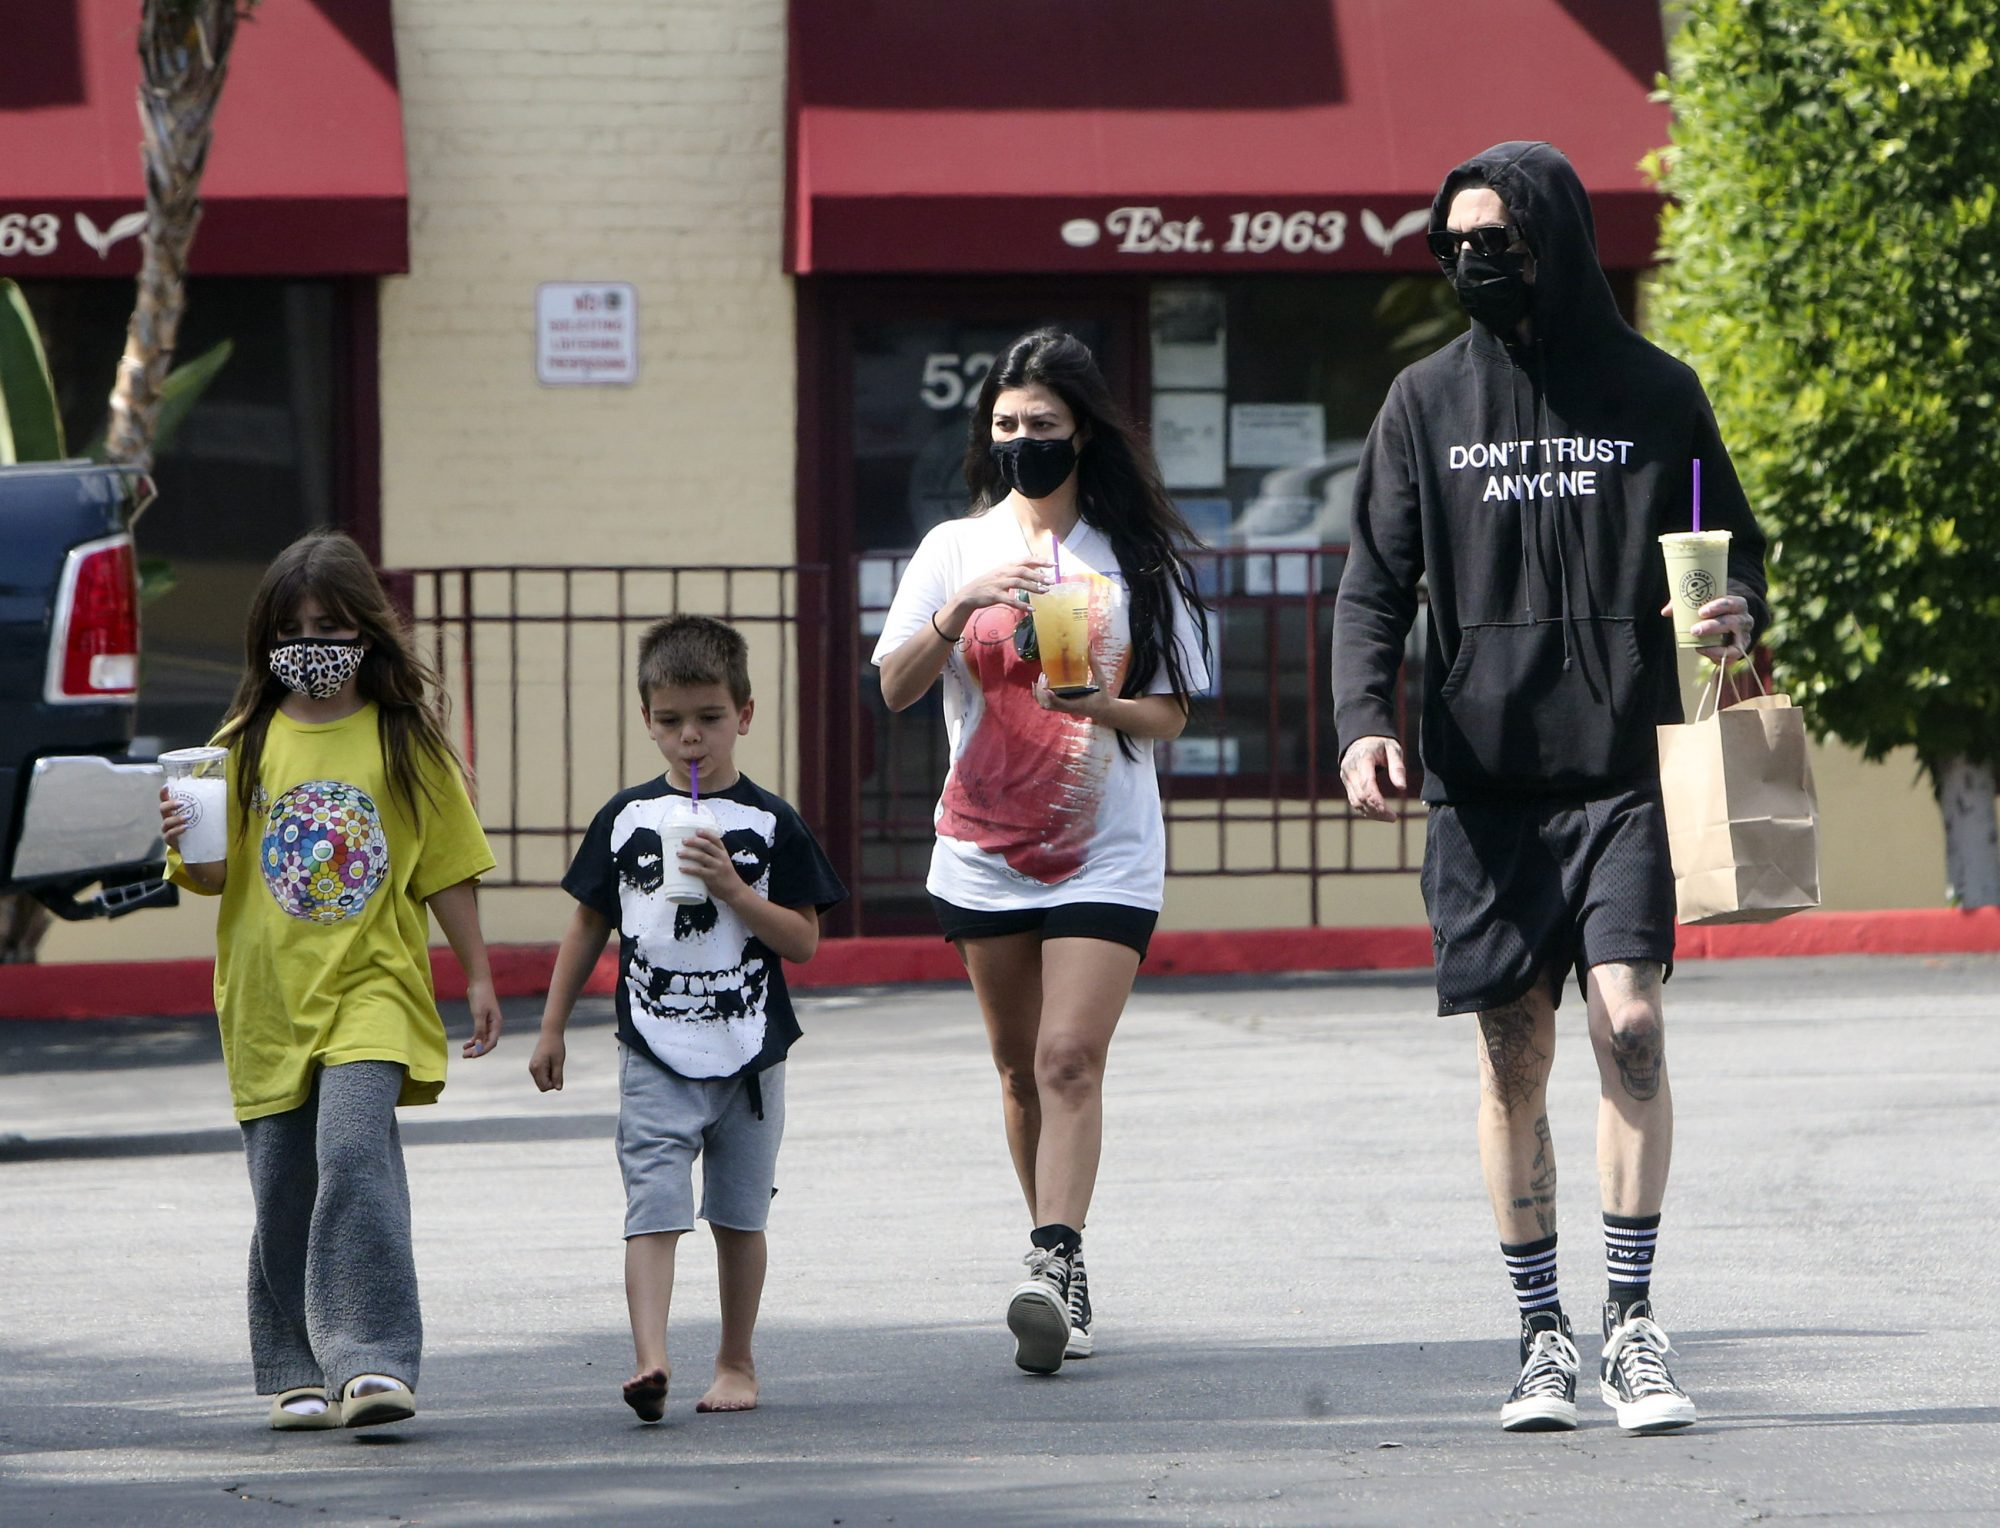 Kourtney Kardashian & Travis Barker Stop for Snacks with the Kids During a Memorial day Road Trip